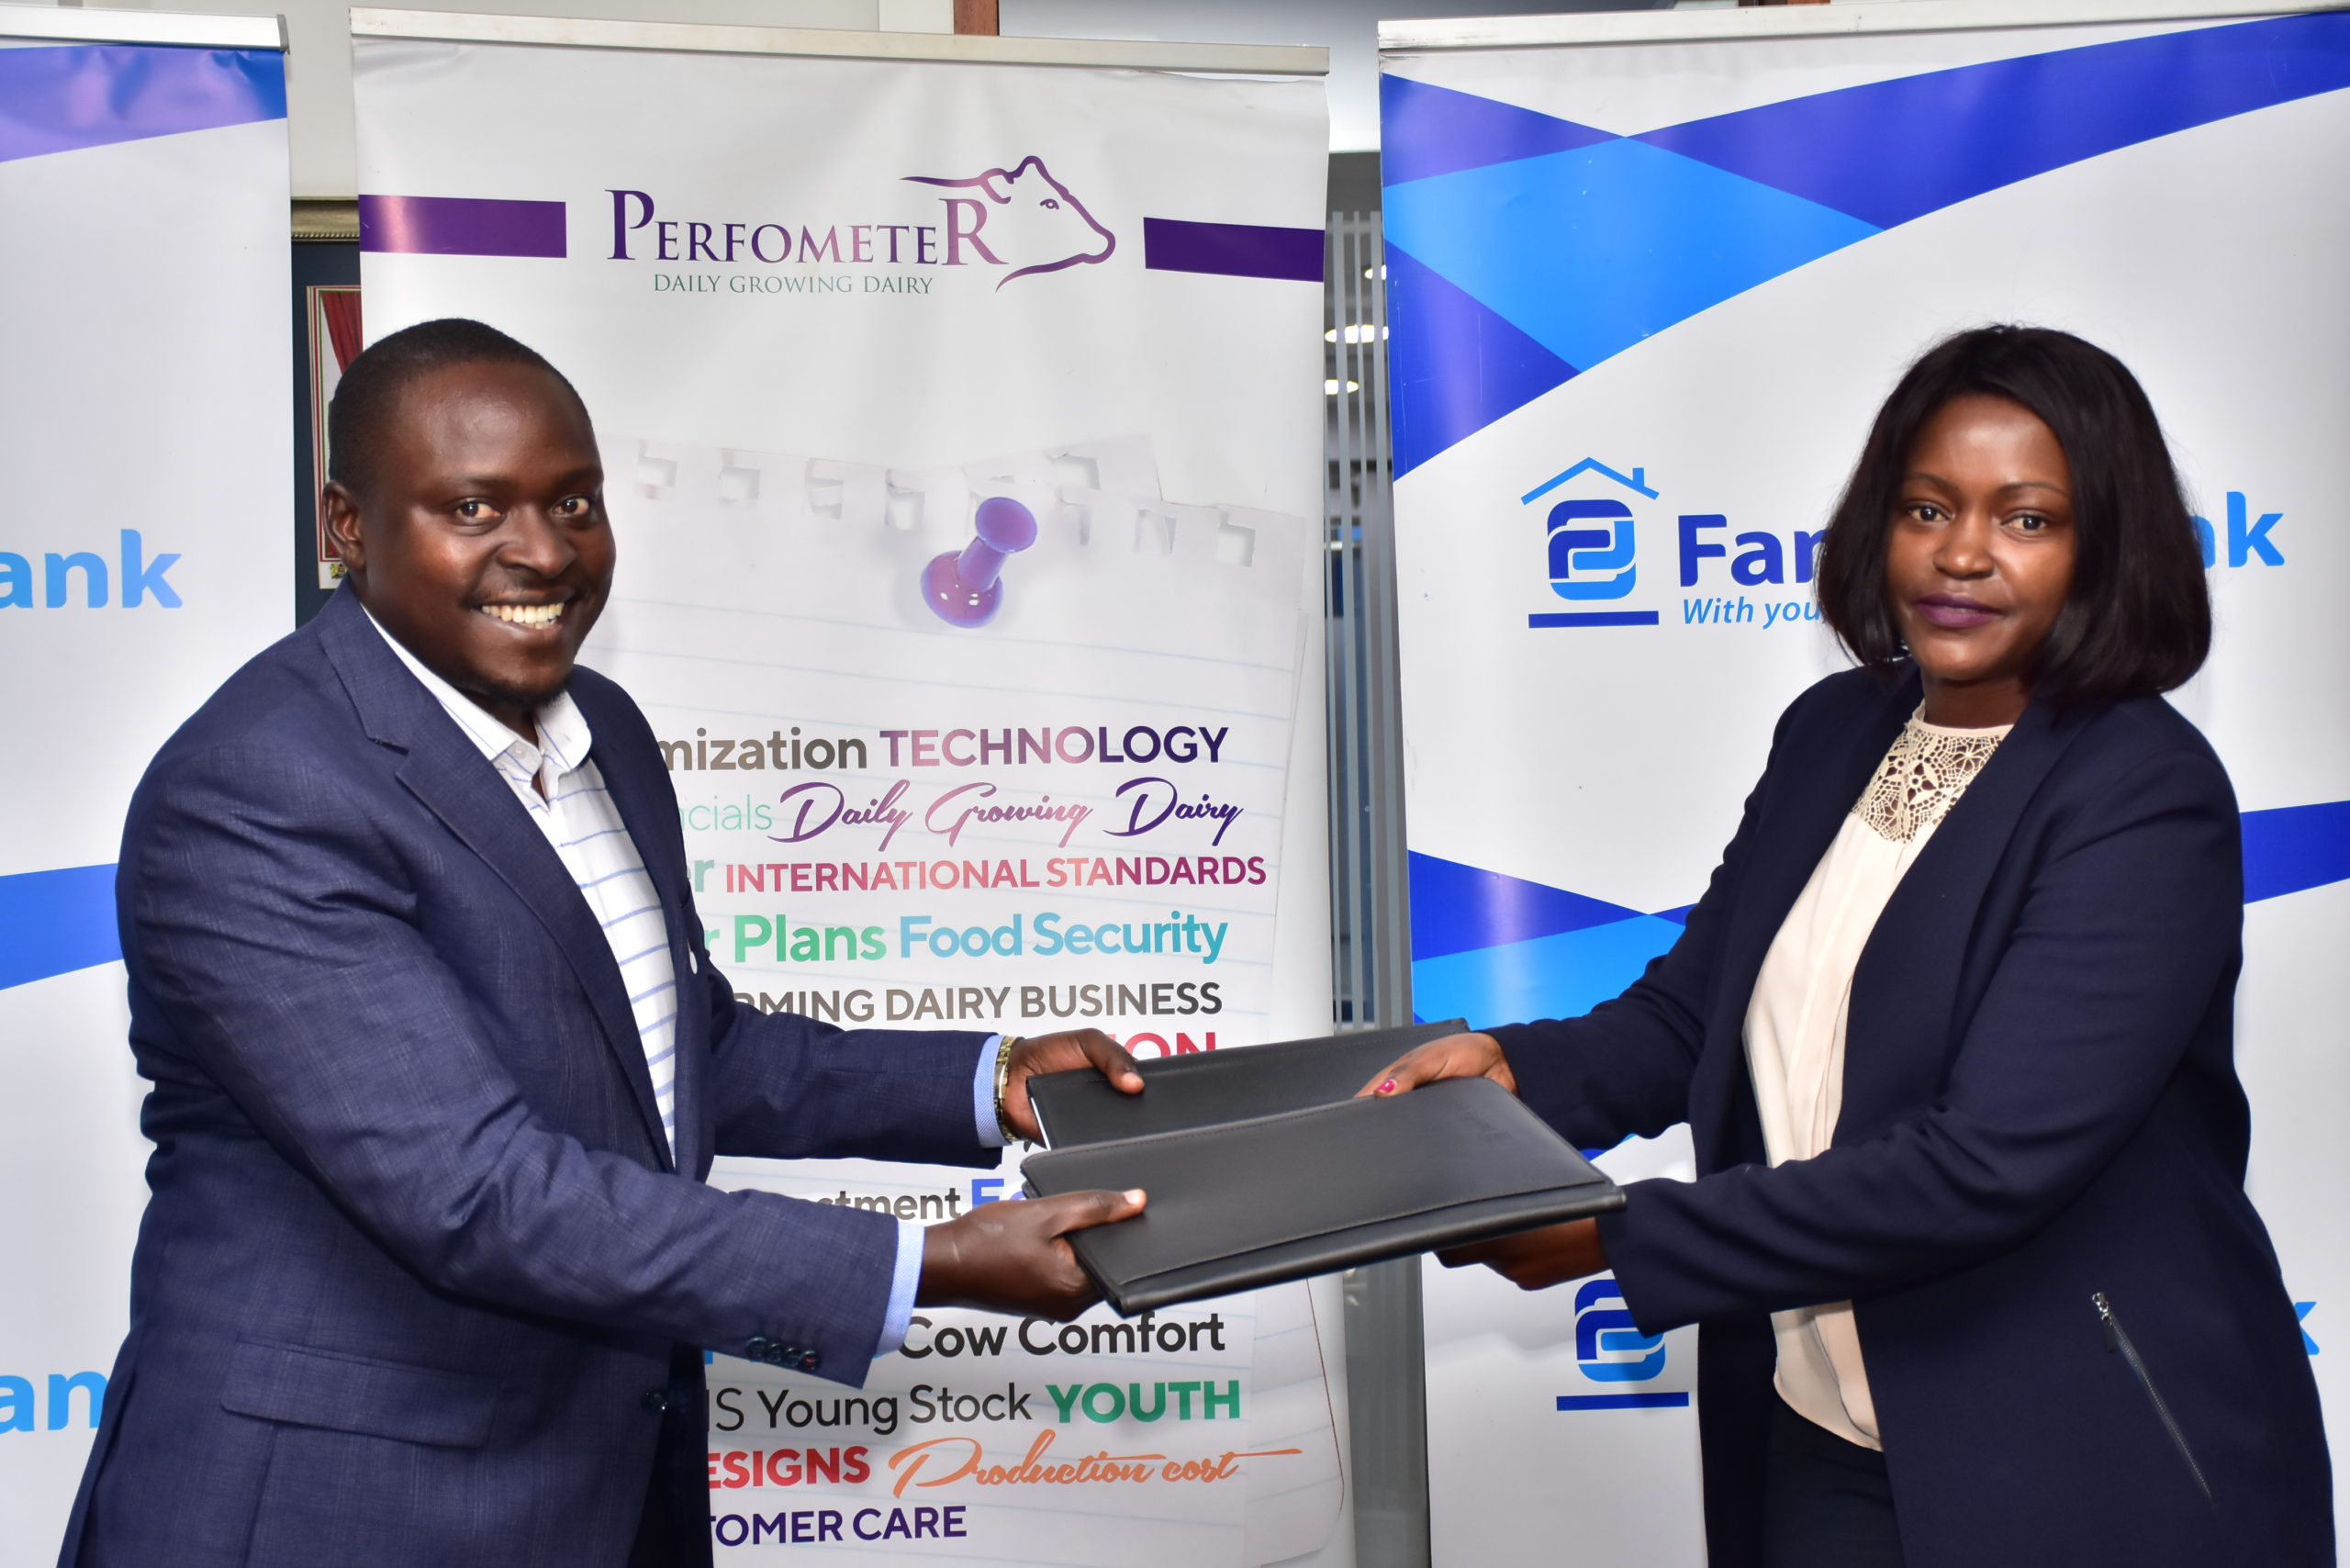 Performeter Head of Business David Maina (L) and Family Bank CEO Rebecca Mbithi (R) after the signing of an agreement that will see 100,000 dairy farmers boost milk yield